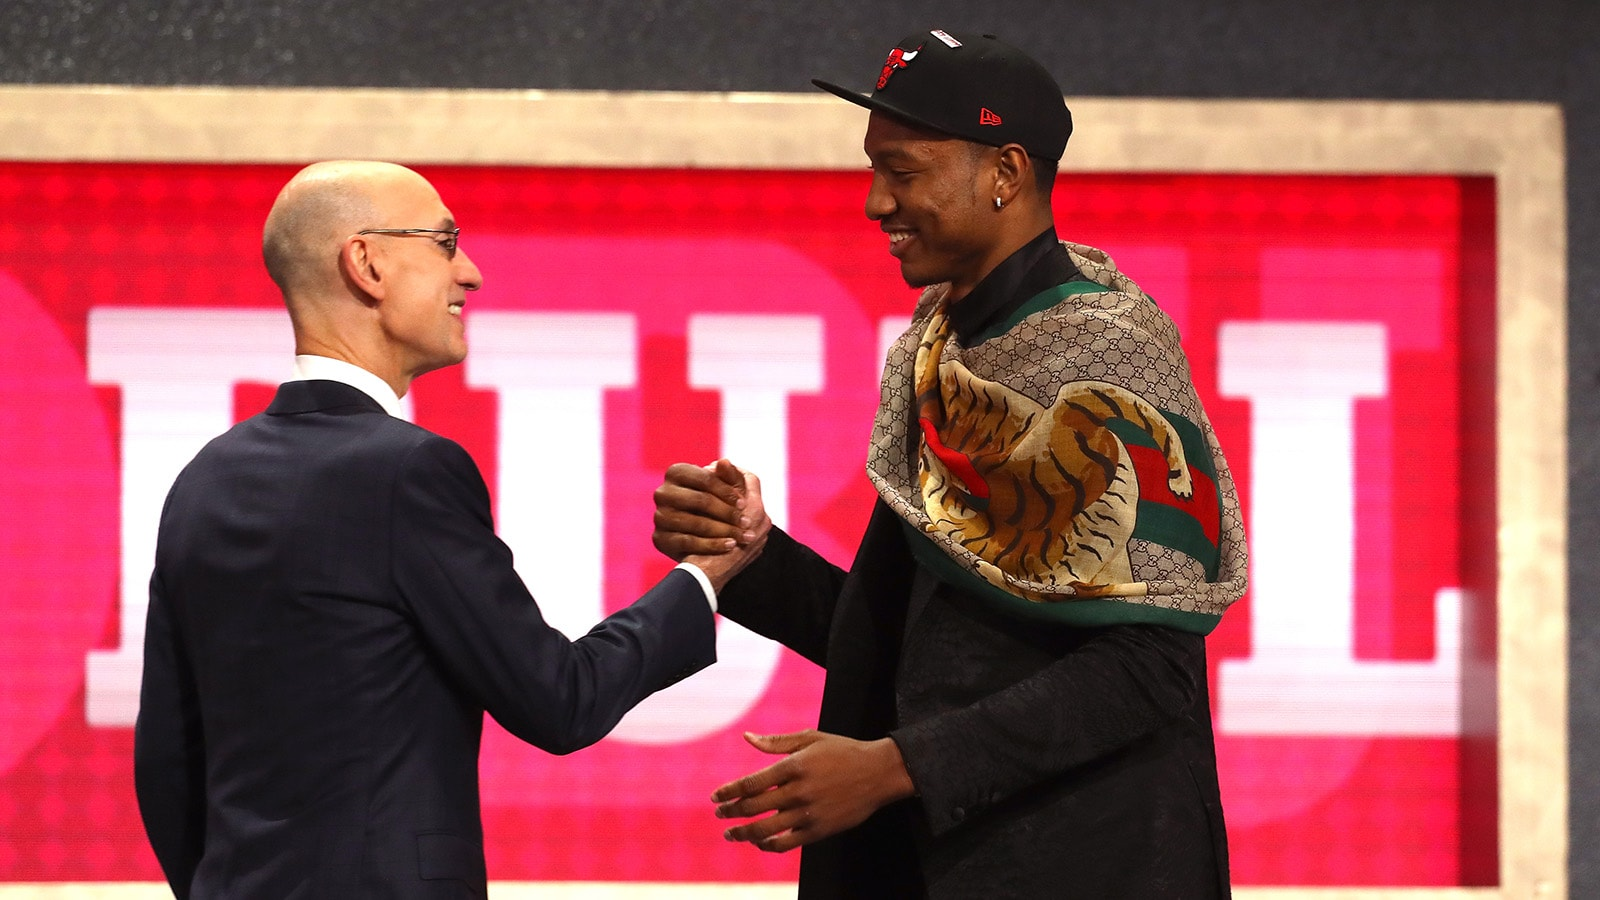 Wendell Carter Jr. at the 2018 NBA Draft